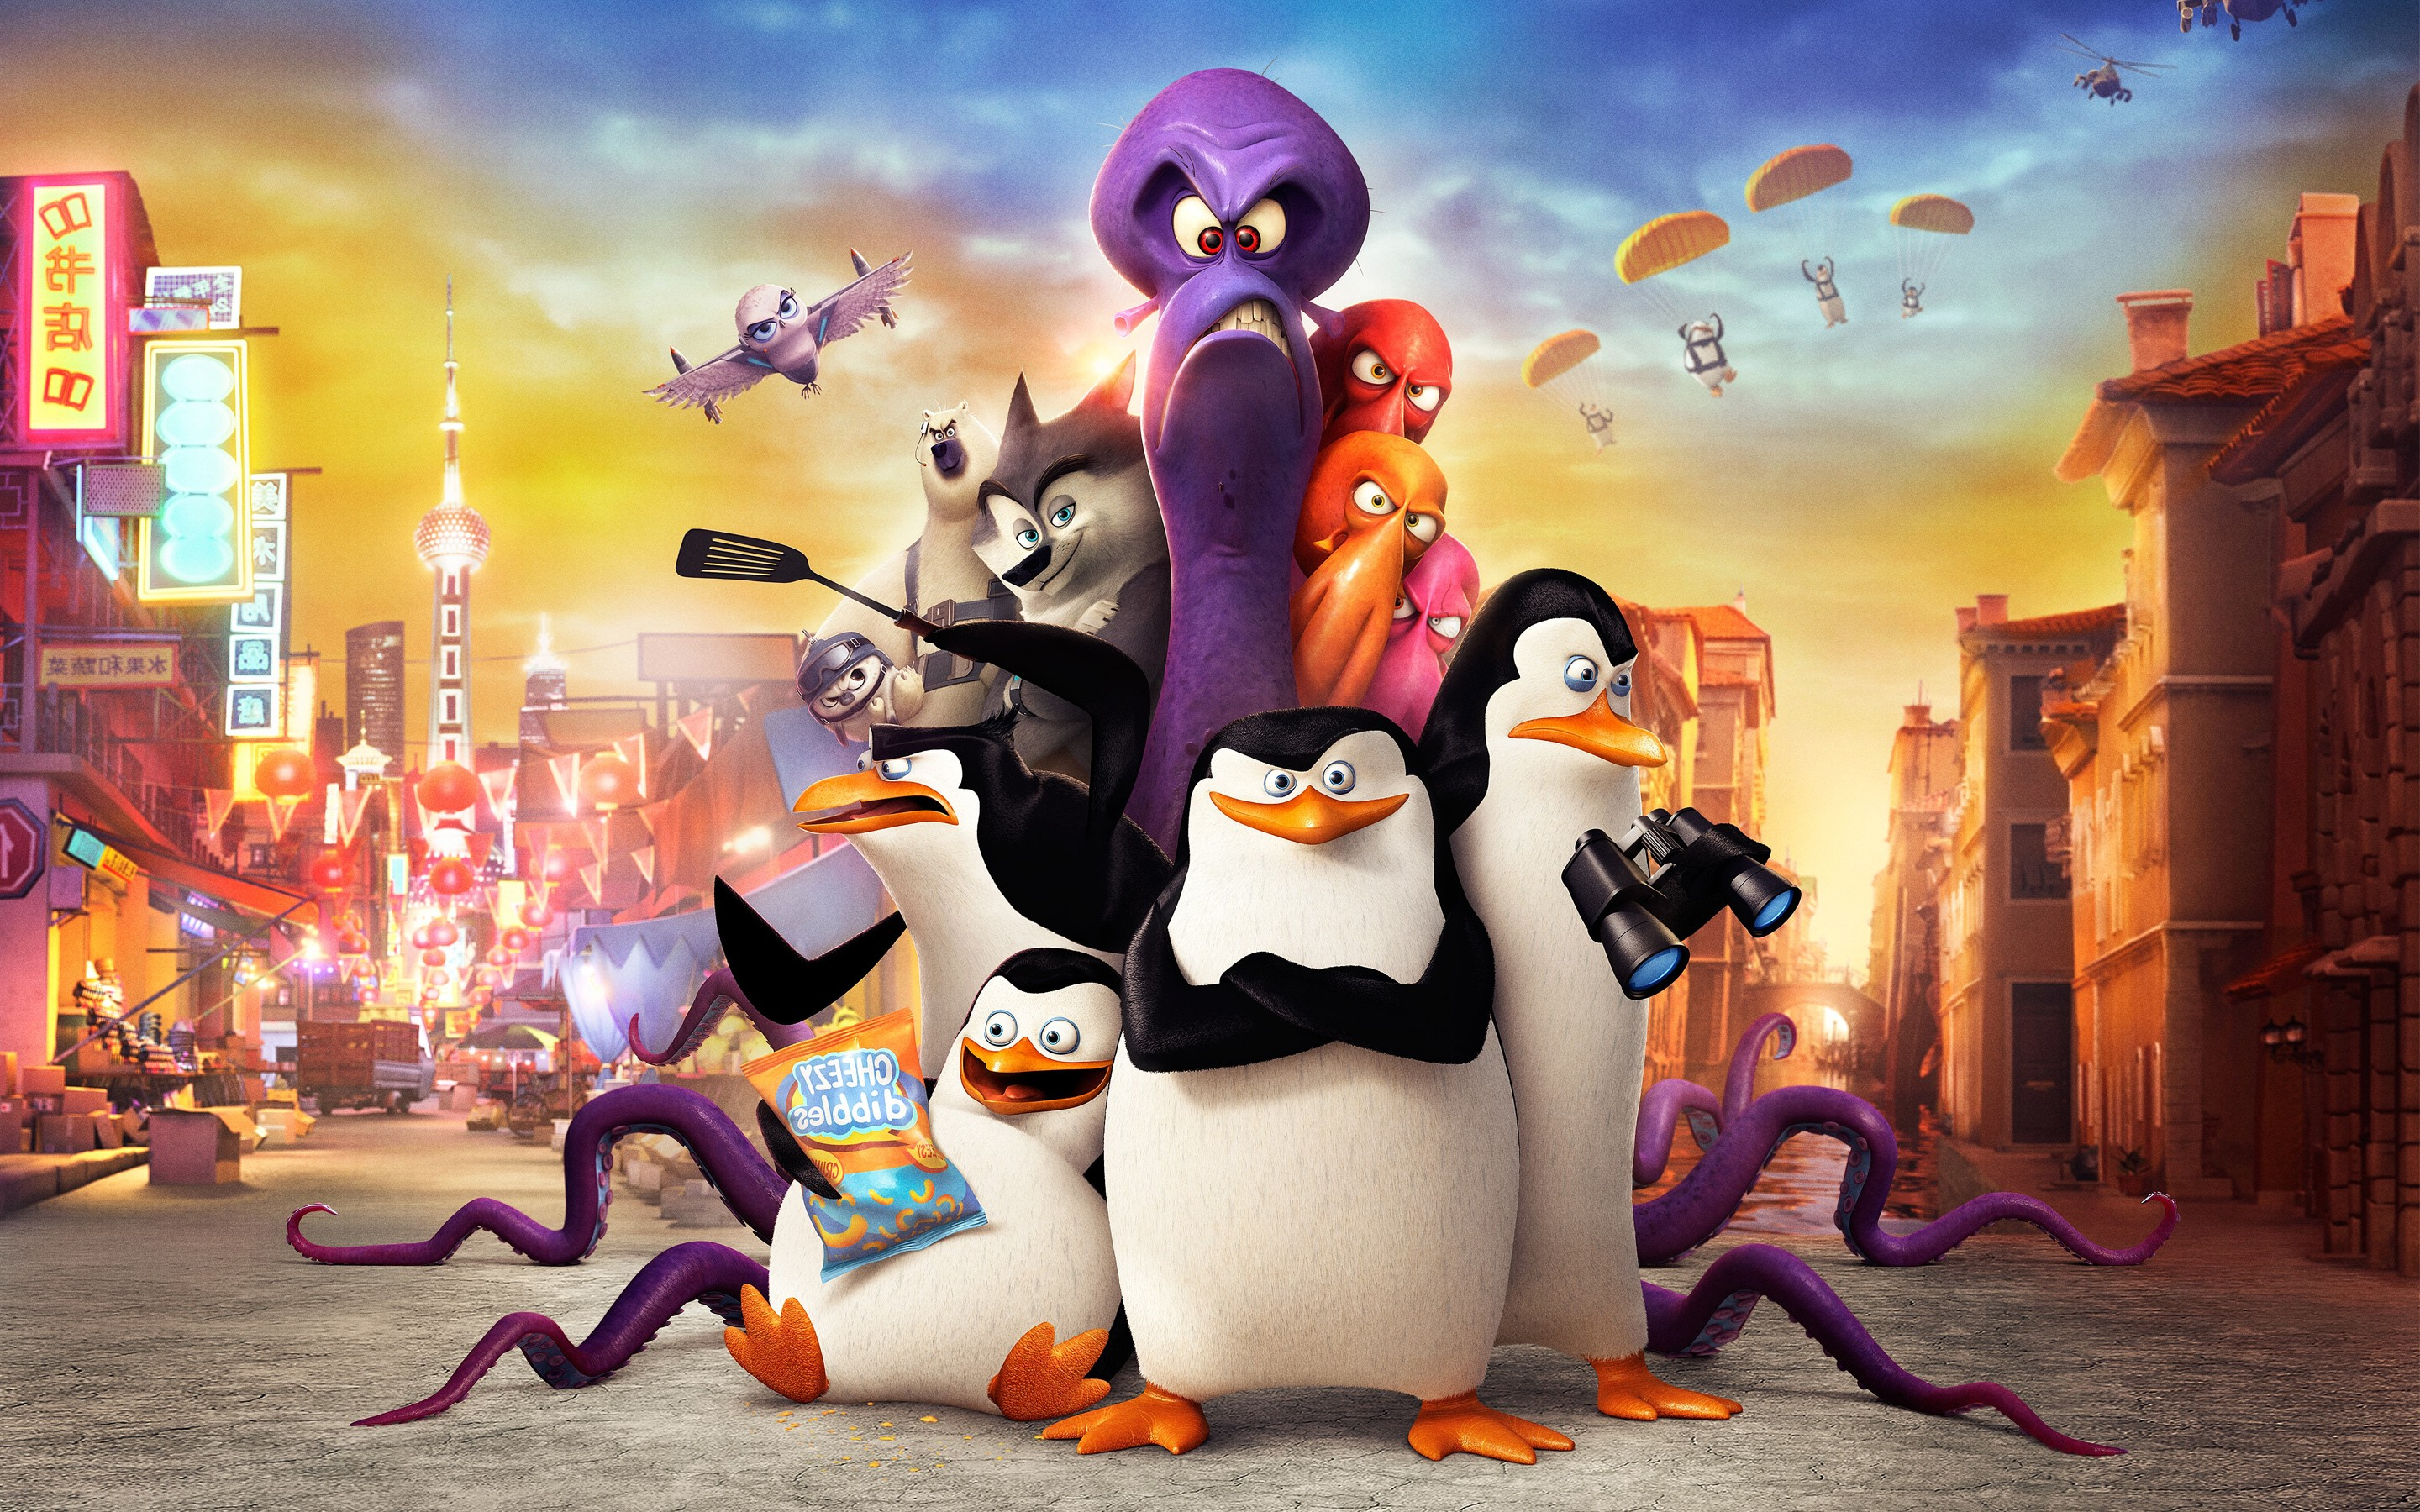 3d Cartoon Girl Wallpapers Penguins Of Madagascar Movie Hd Movies 4k Wallpapers